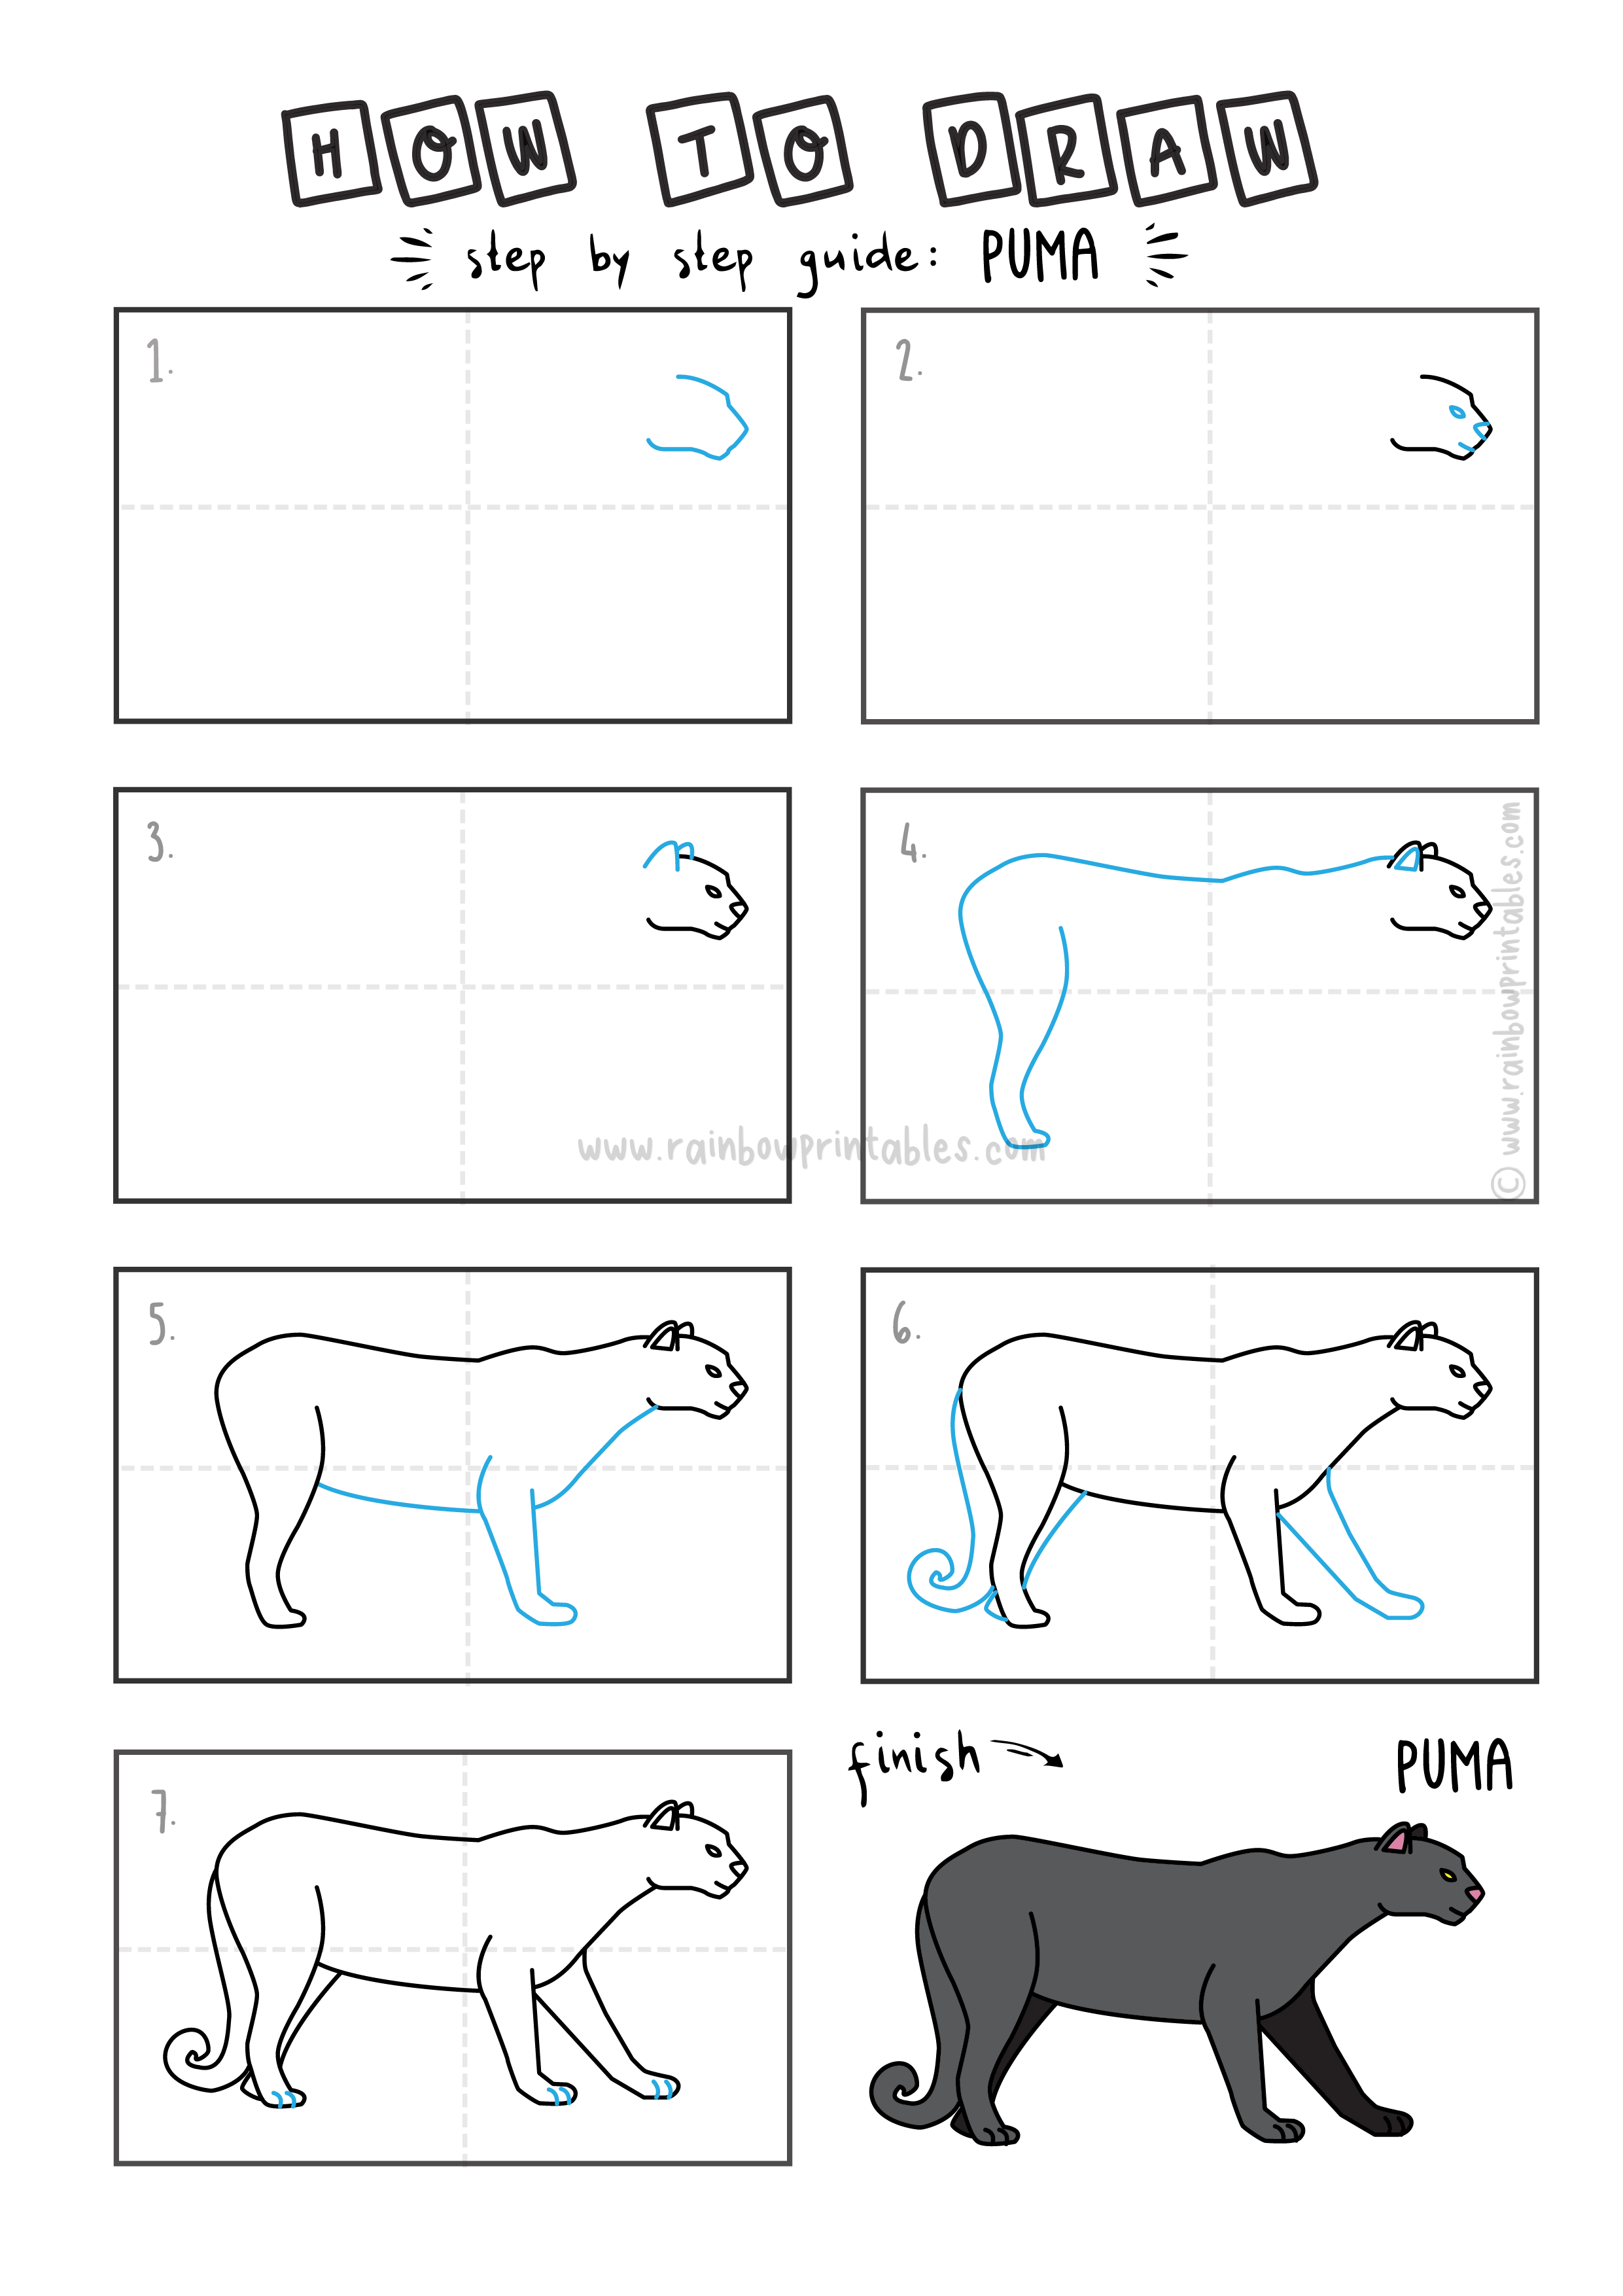 HOW TO DRAW EASY FOR KIDS STEP BY STEP BLACK PUMA ANIMAL COUGAR ANIMAL CAT